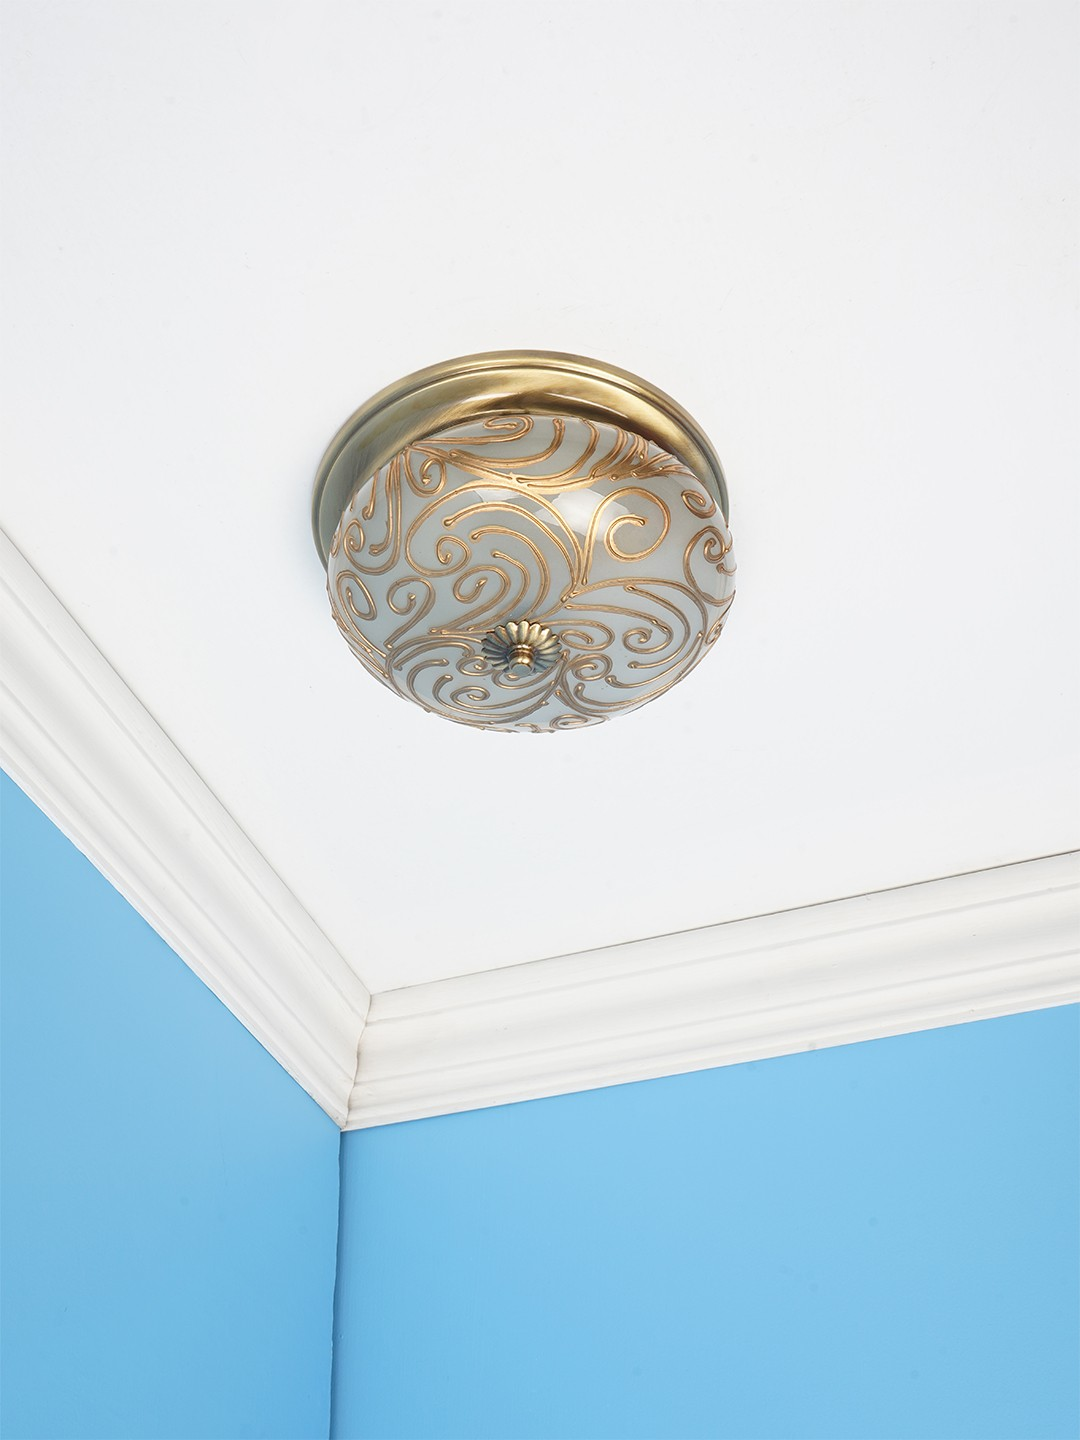 Hand Painted Jaipuria Brass Ceiling Lamp - Small